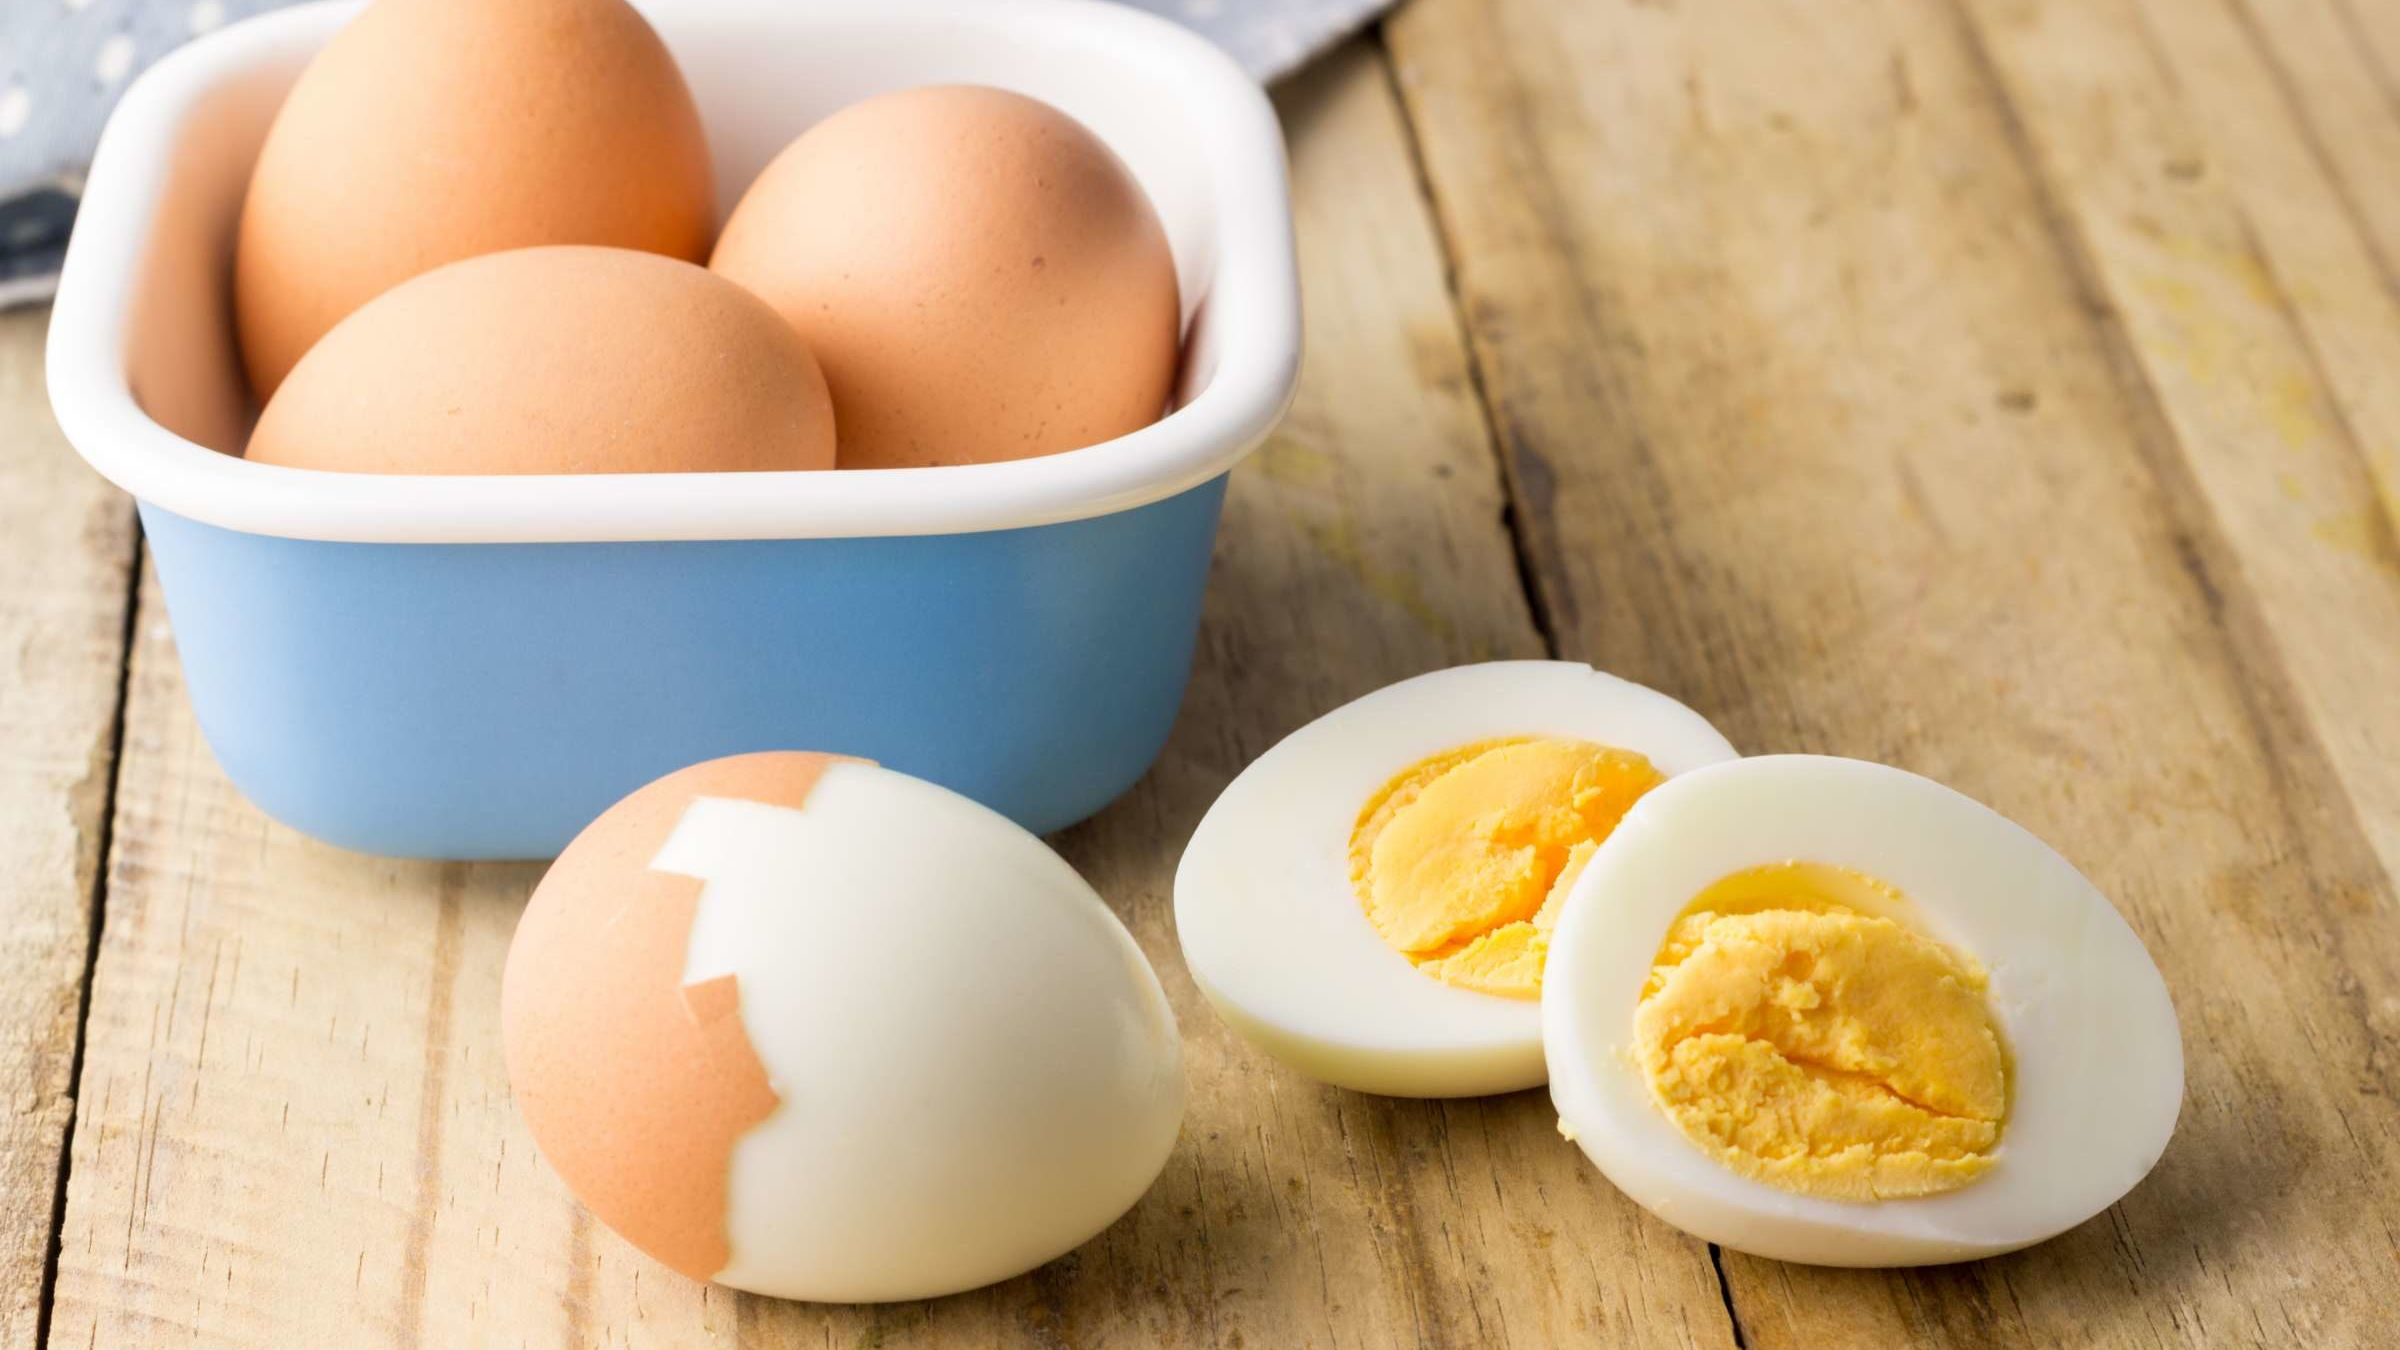 This Two-Second Trick Makes It Easier to Cook and Peel Hard-Boiled Eggs